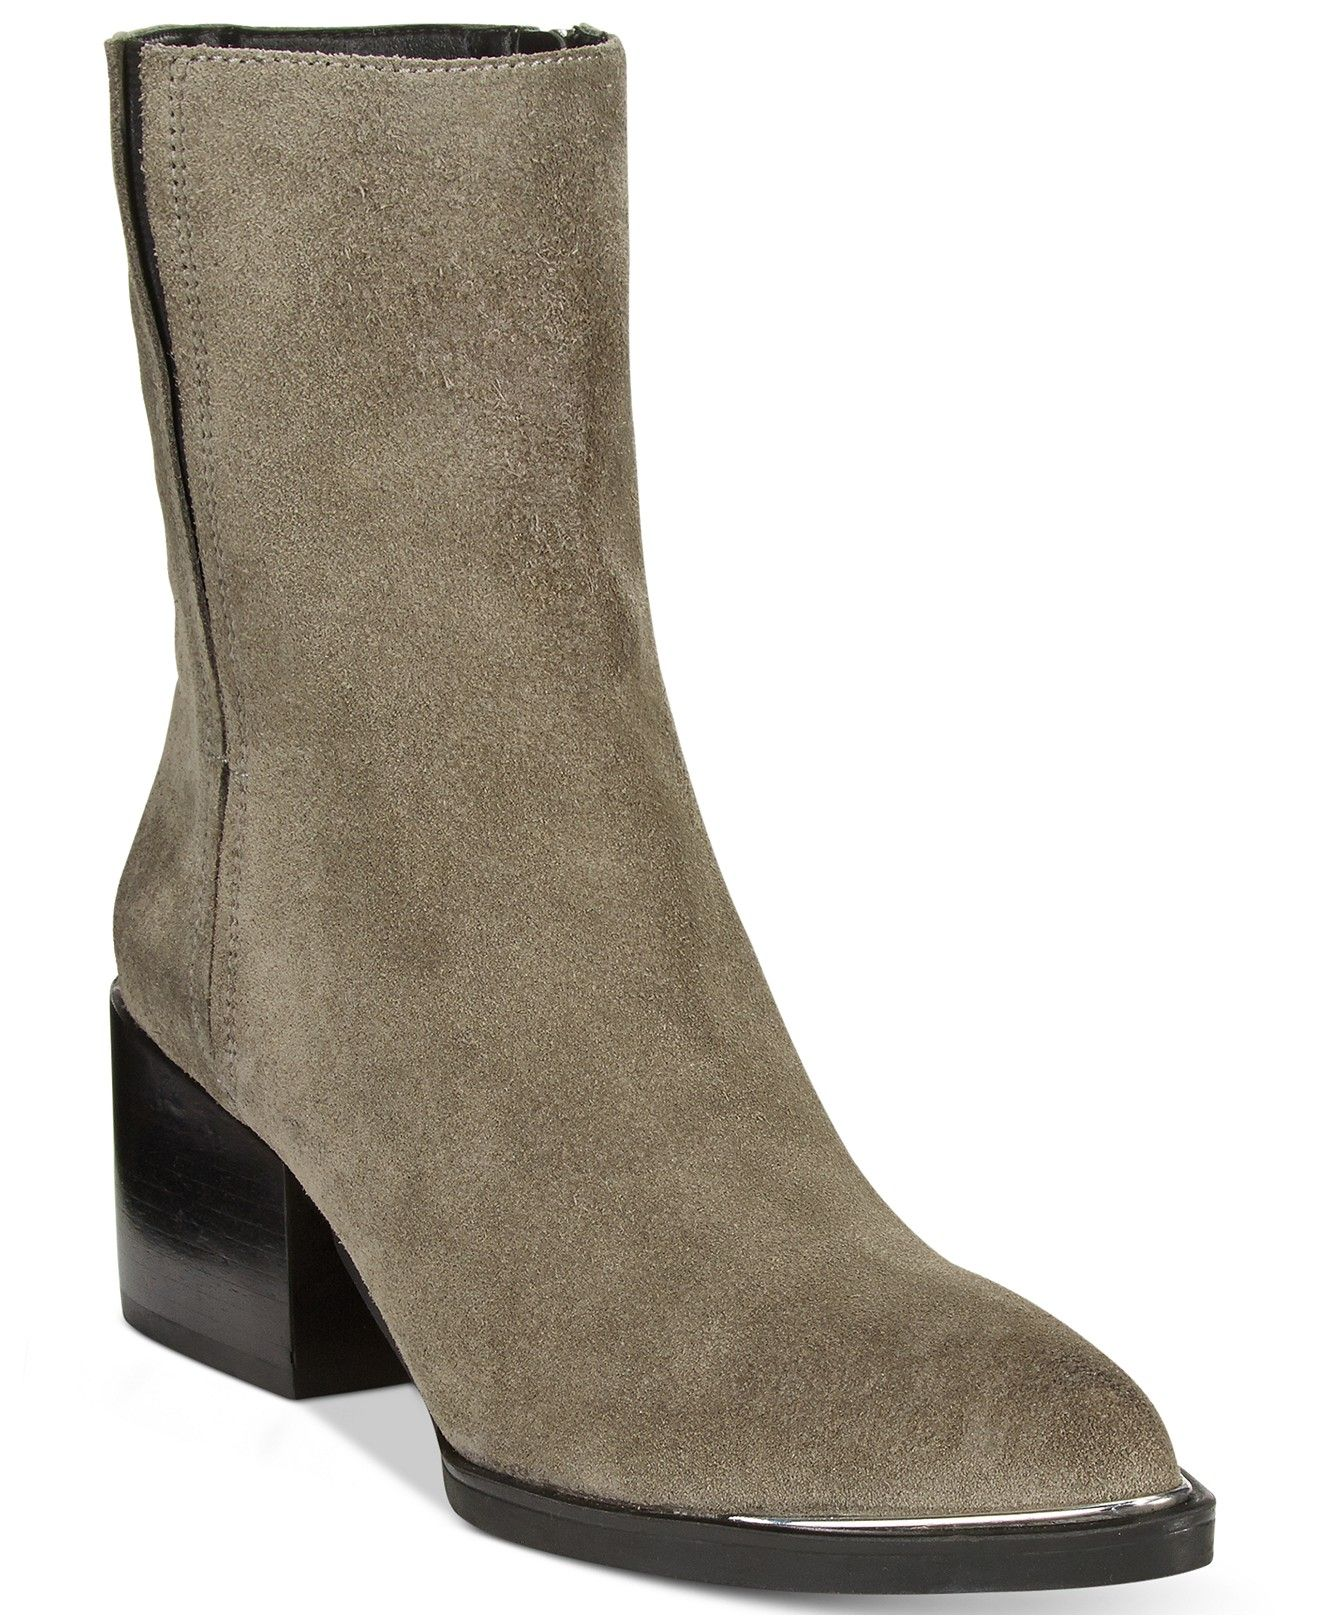 5f2554631949 Circus by Sam Edelman Raylan Booties - Boots - Shoes - Macy s ...